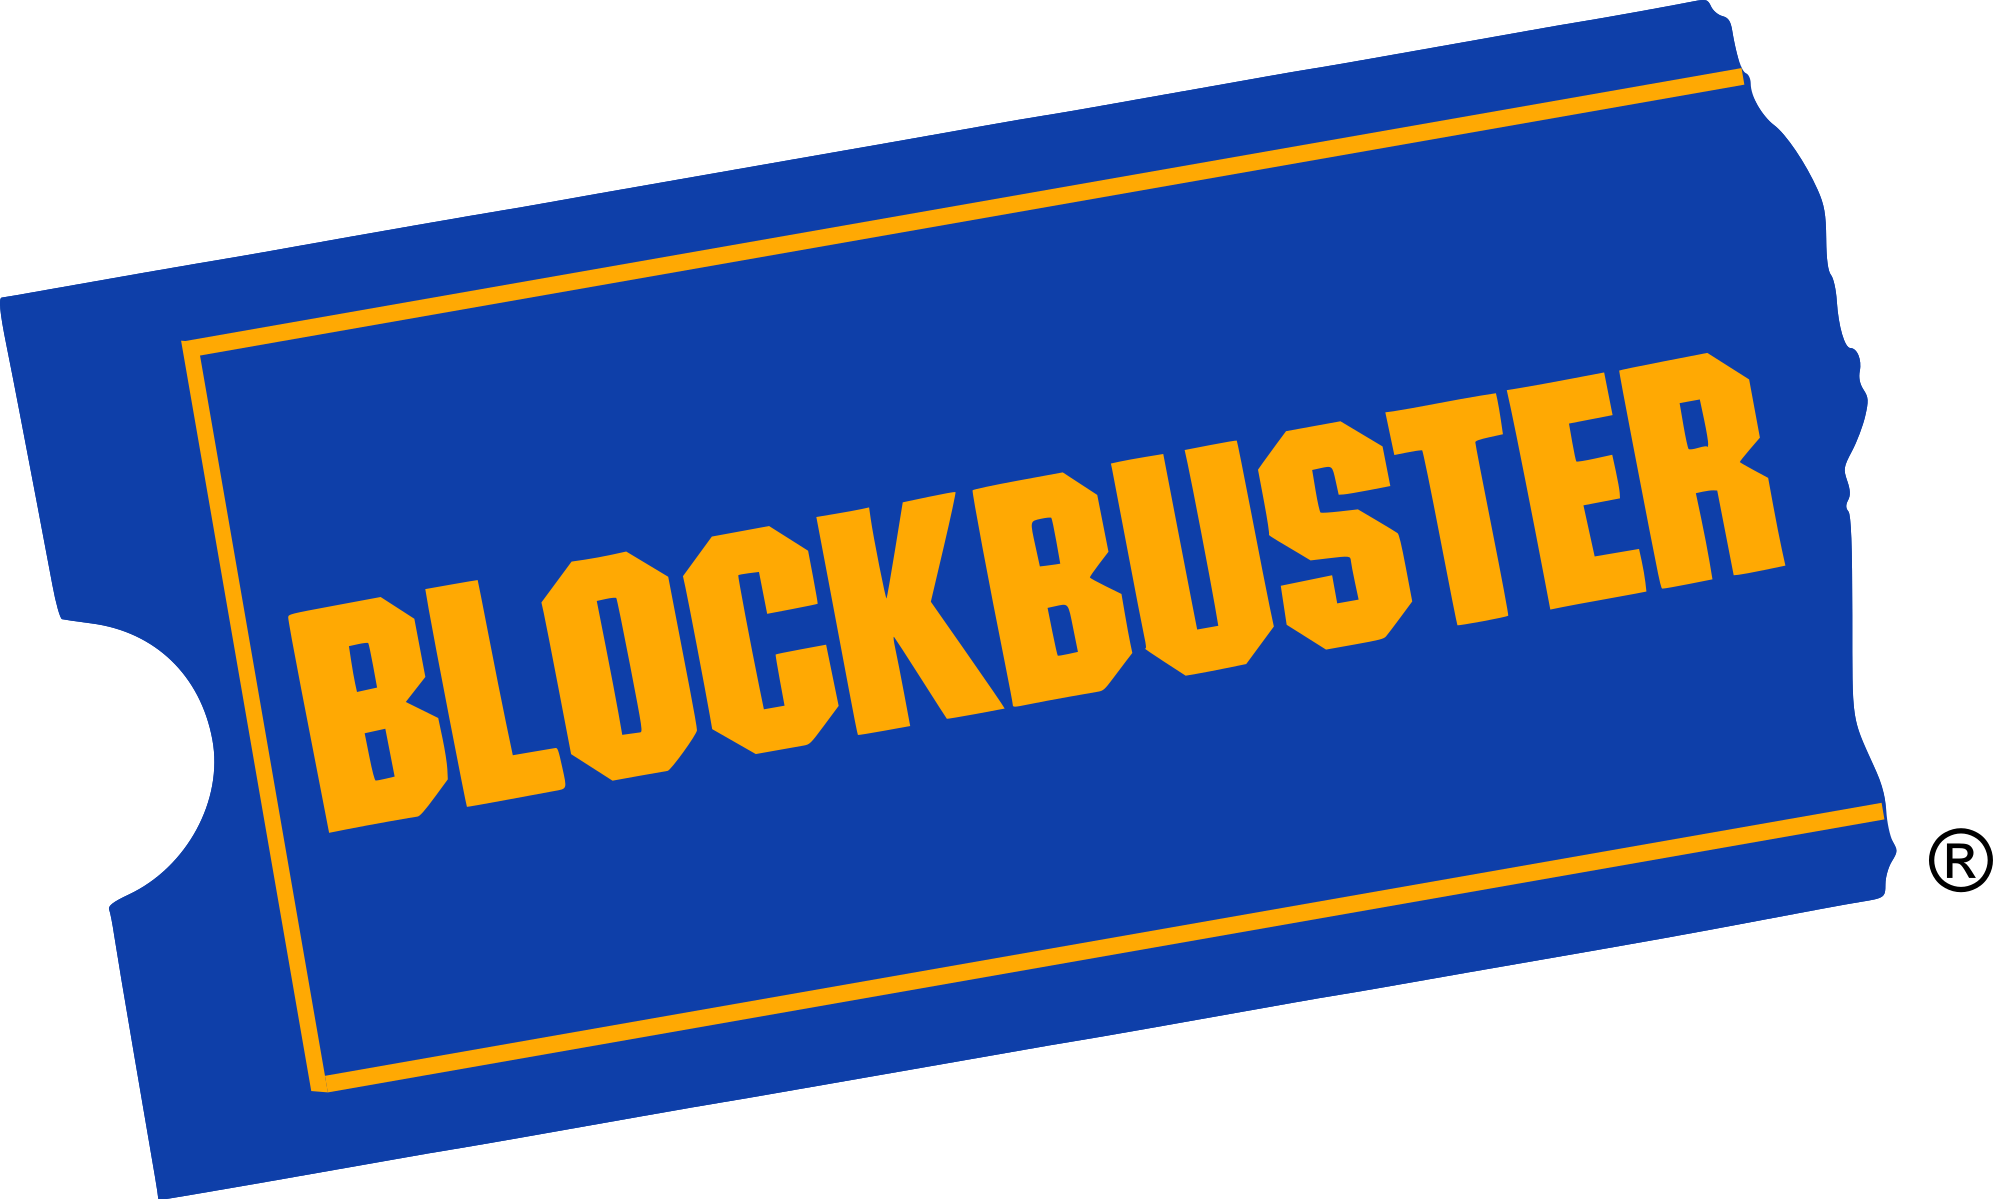 Blockbuster Deal